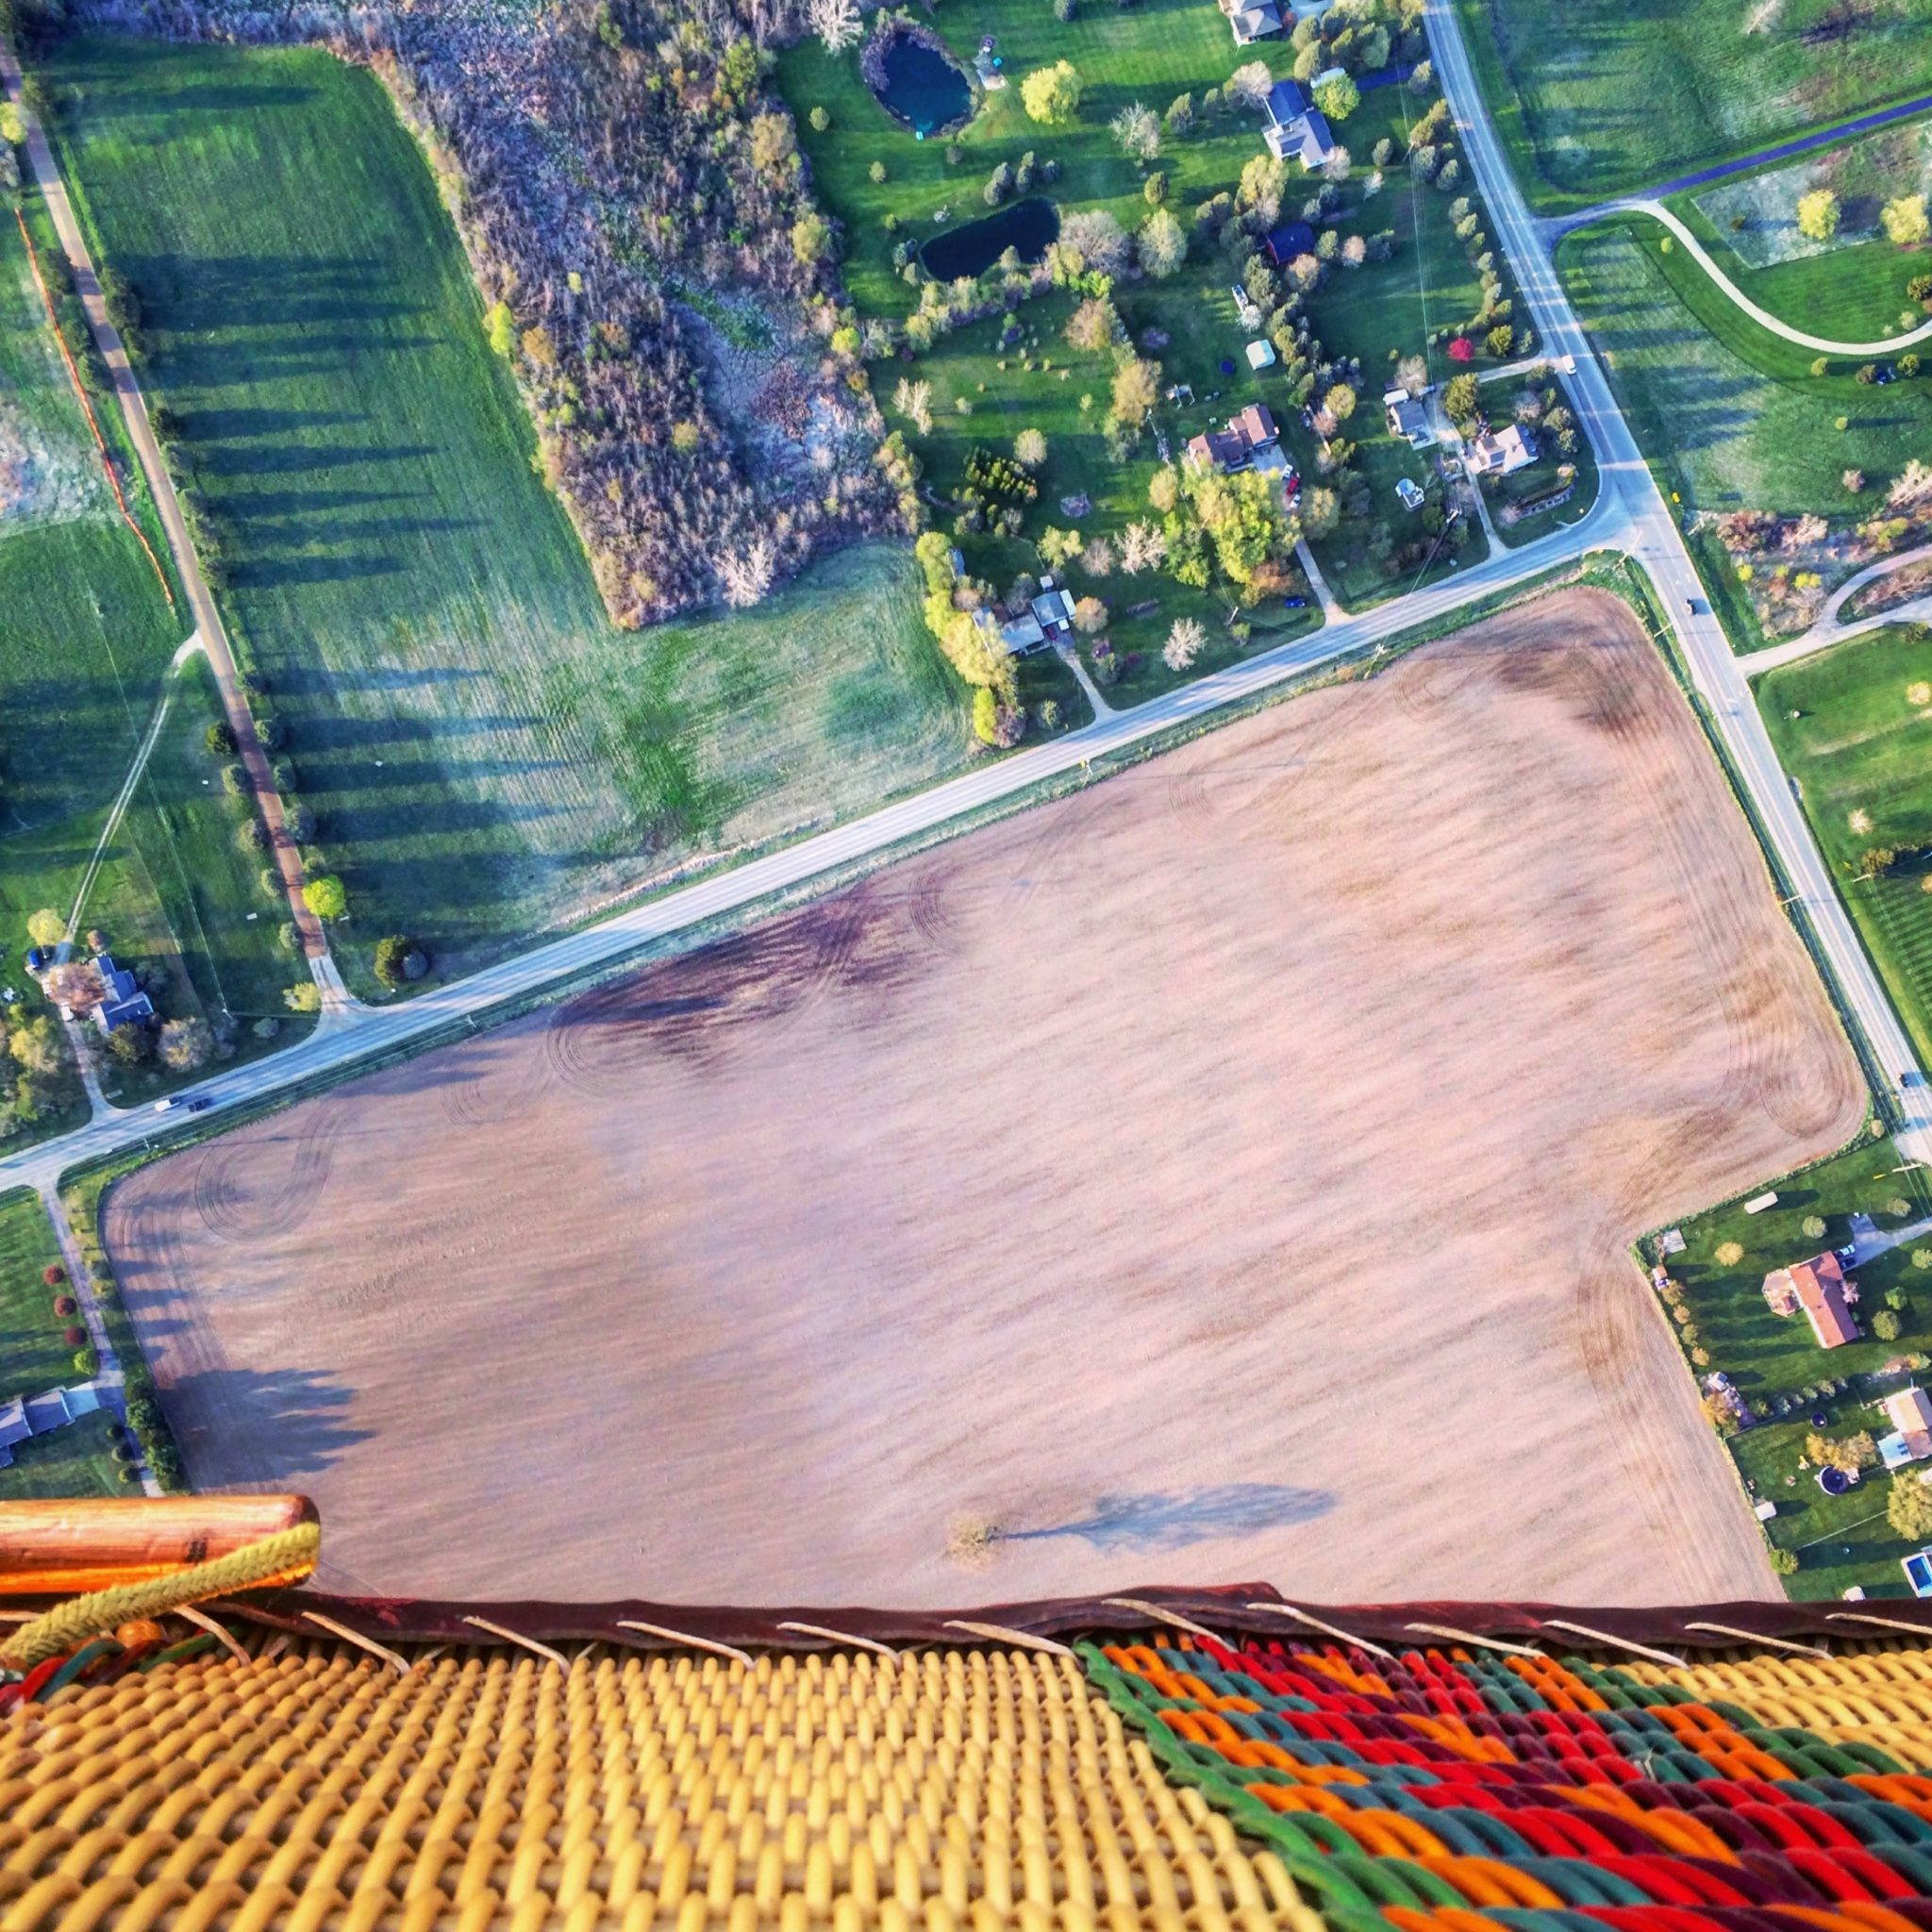 The Michigan Bucket List - Hot Air Balloon